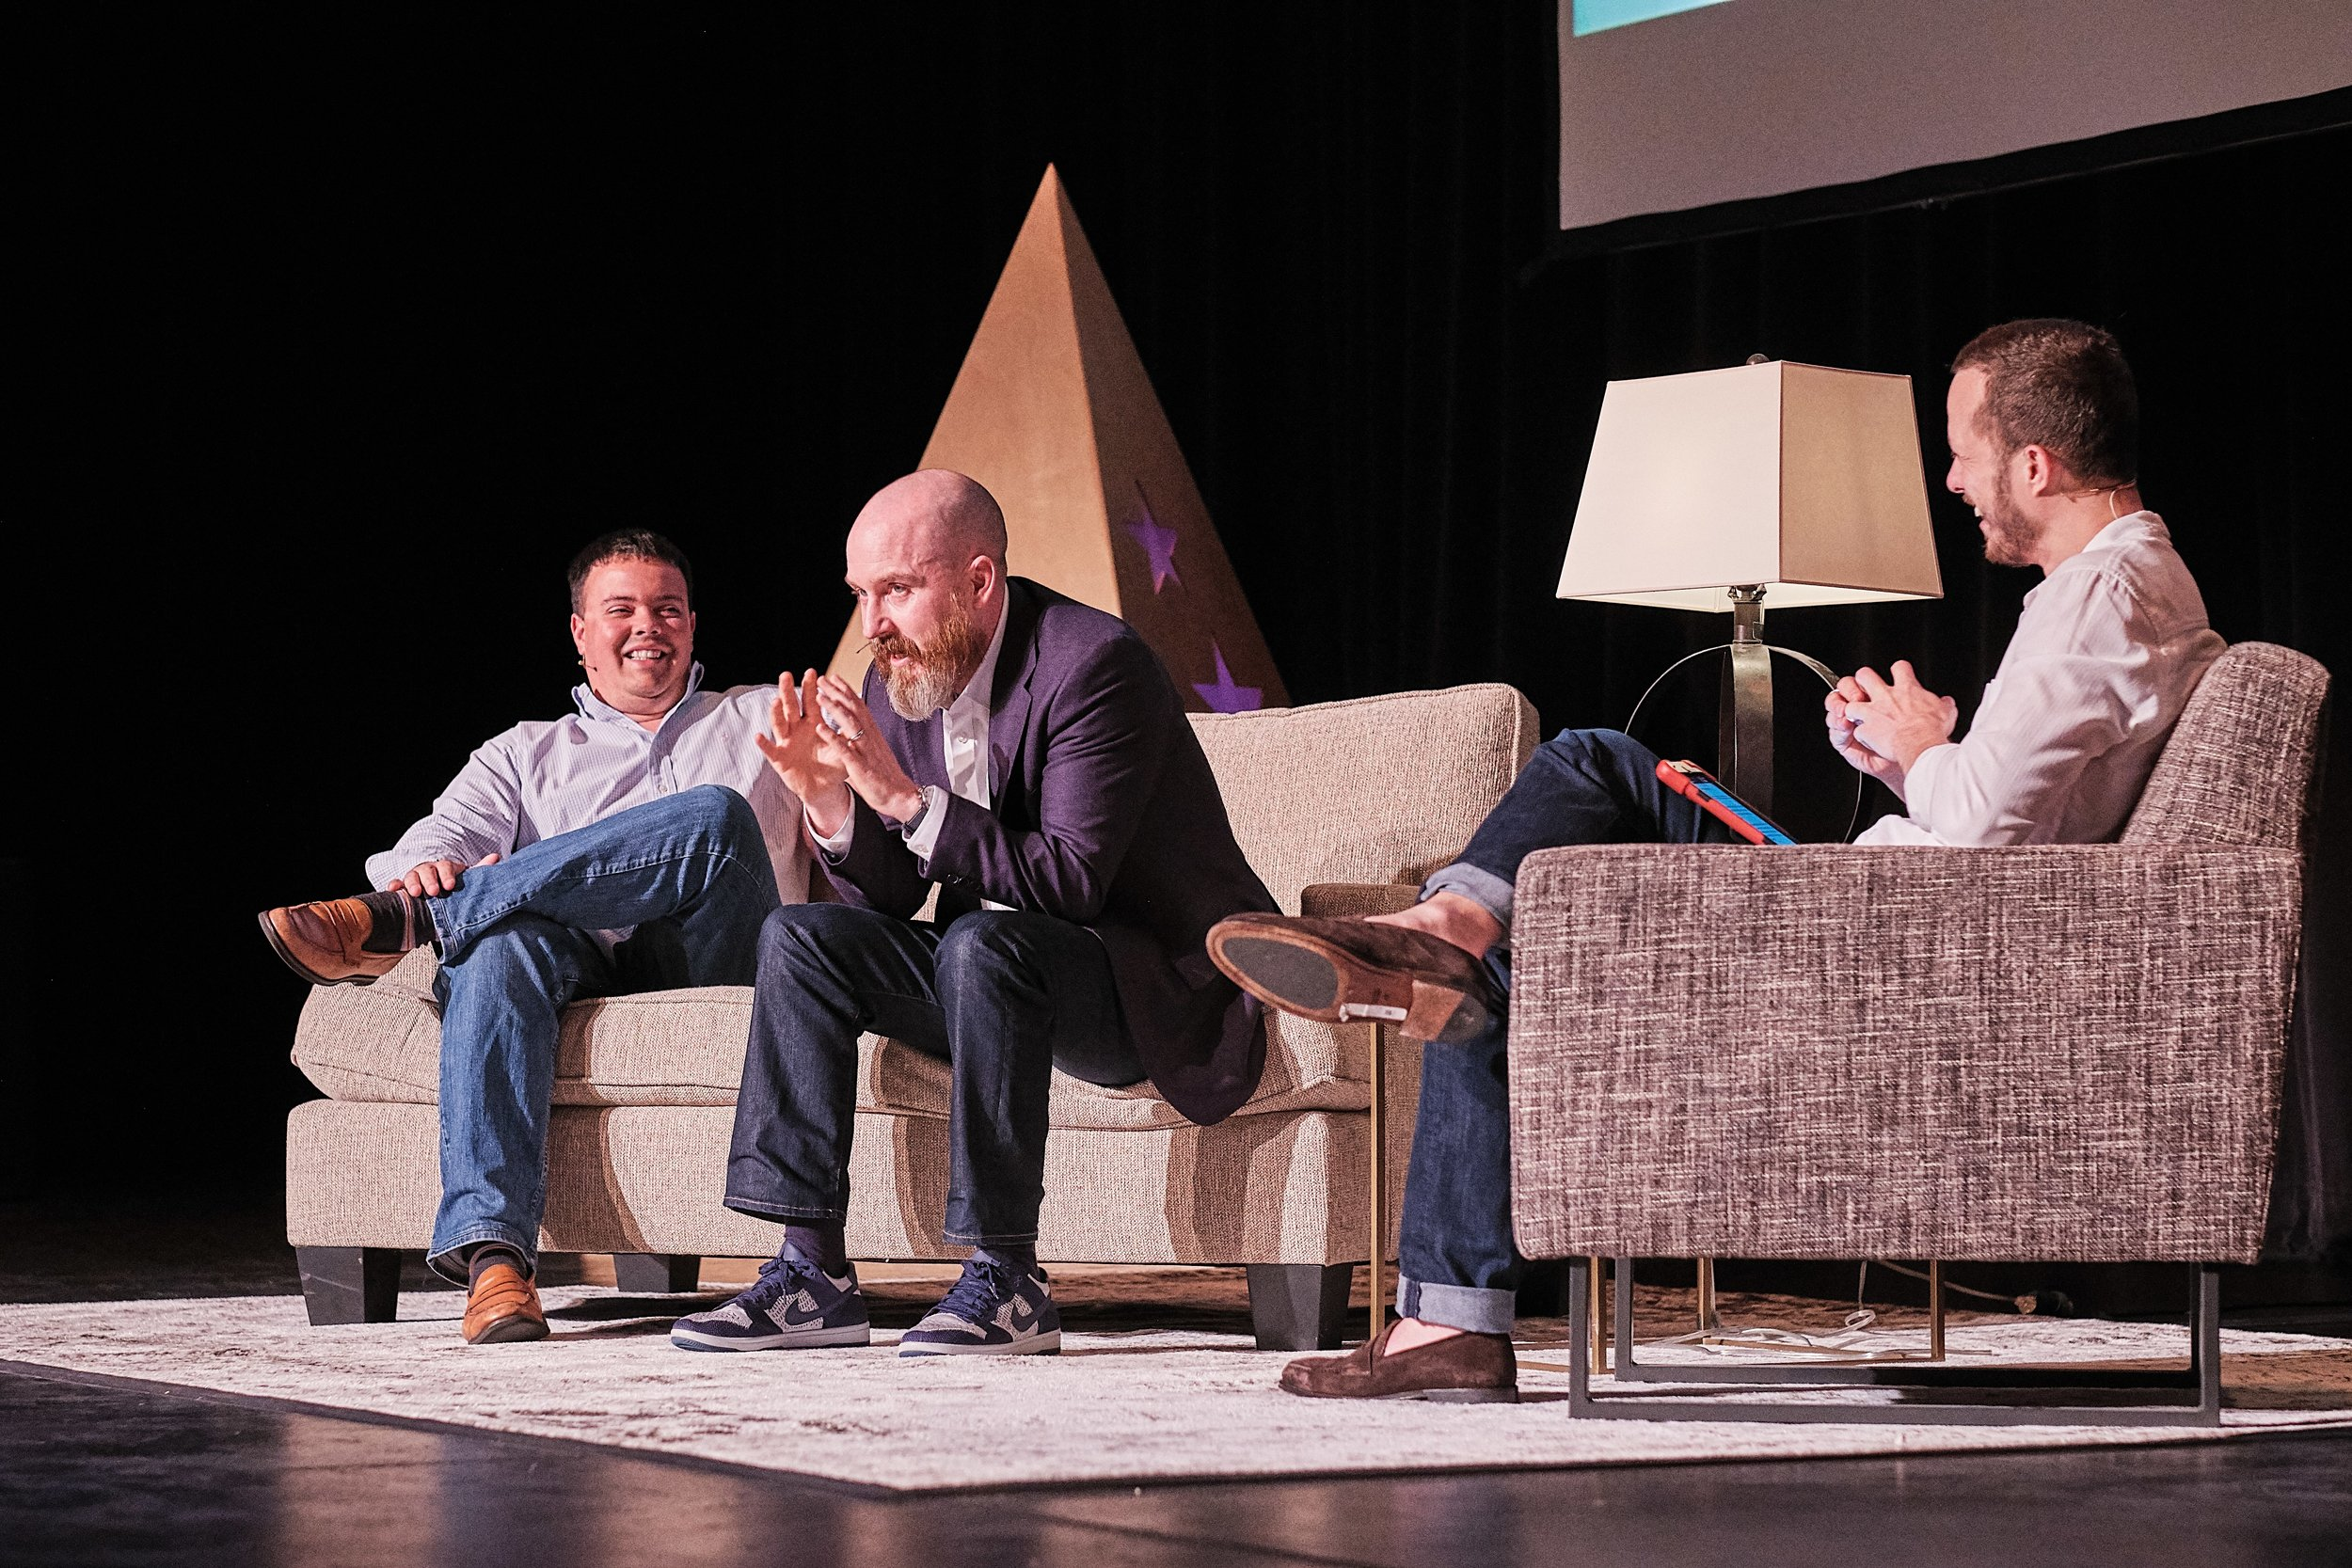 Brent on stage with Sam Hinke and Patrick O'Shaughnessy at Capital Camp.